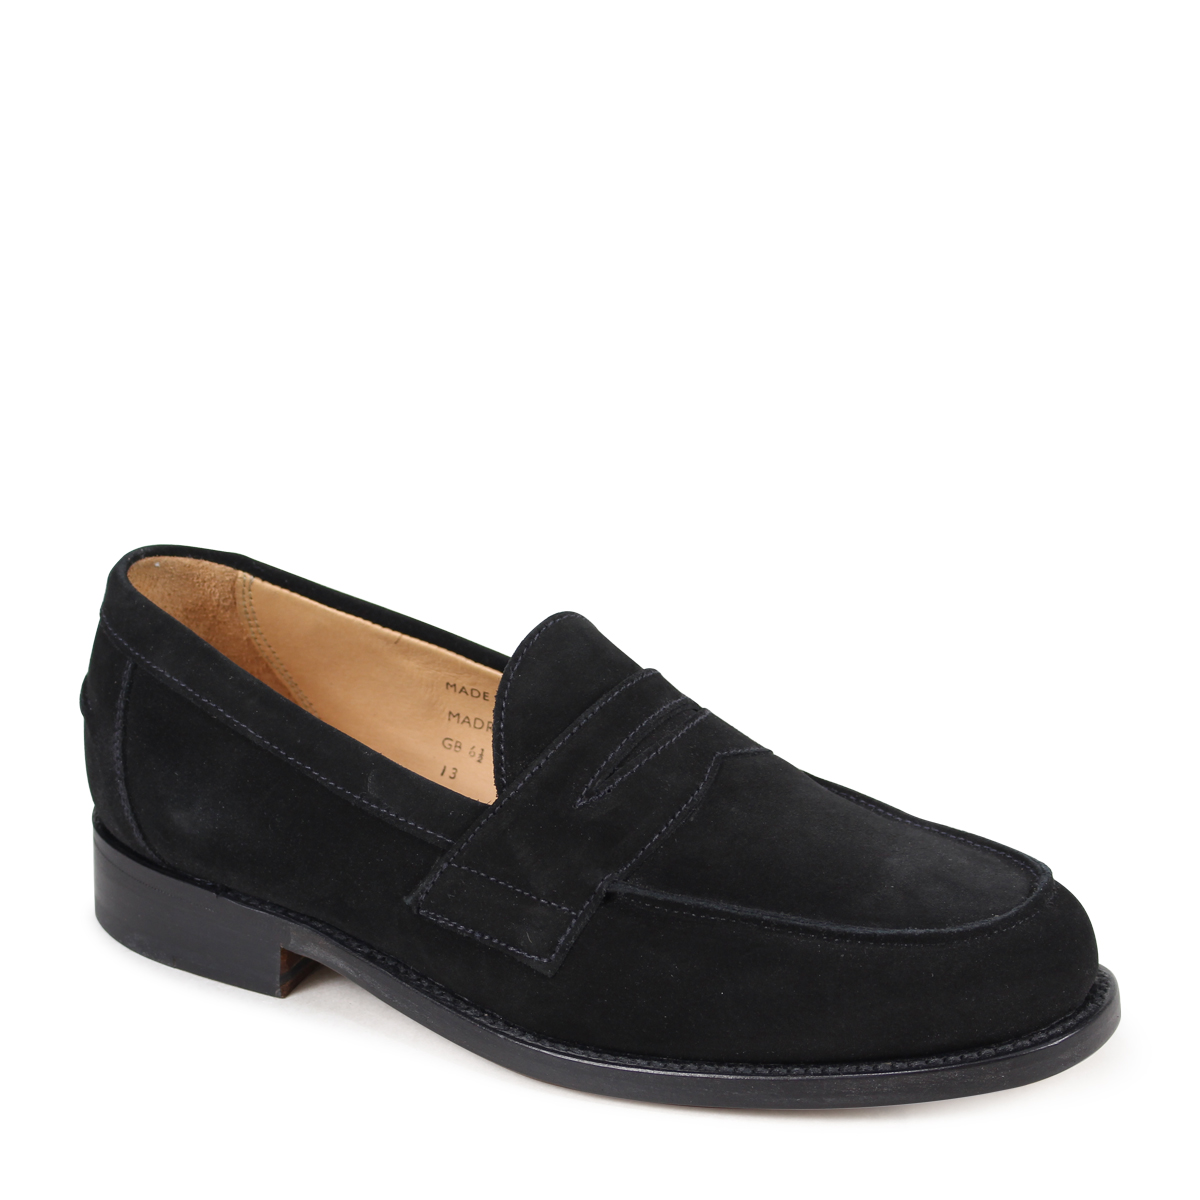 Allsports Sanders Madrid Penny Loafer Shoes D Island Casual Comfort Loafers Suede Black Men 9486bs 3 22 Shinnyu Load 183